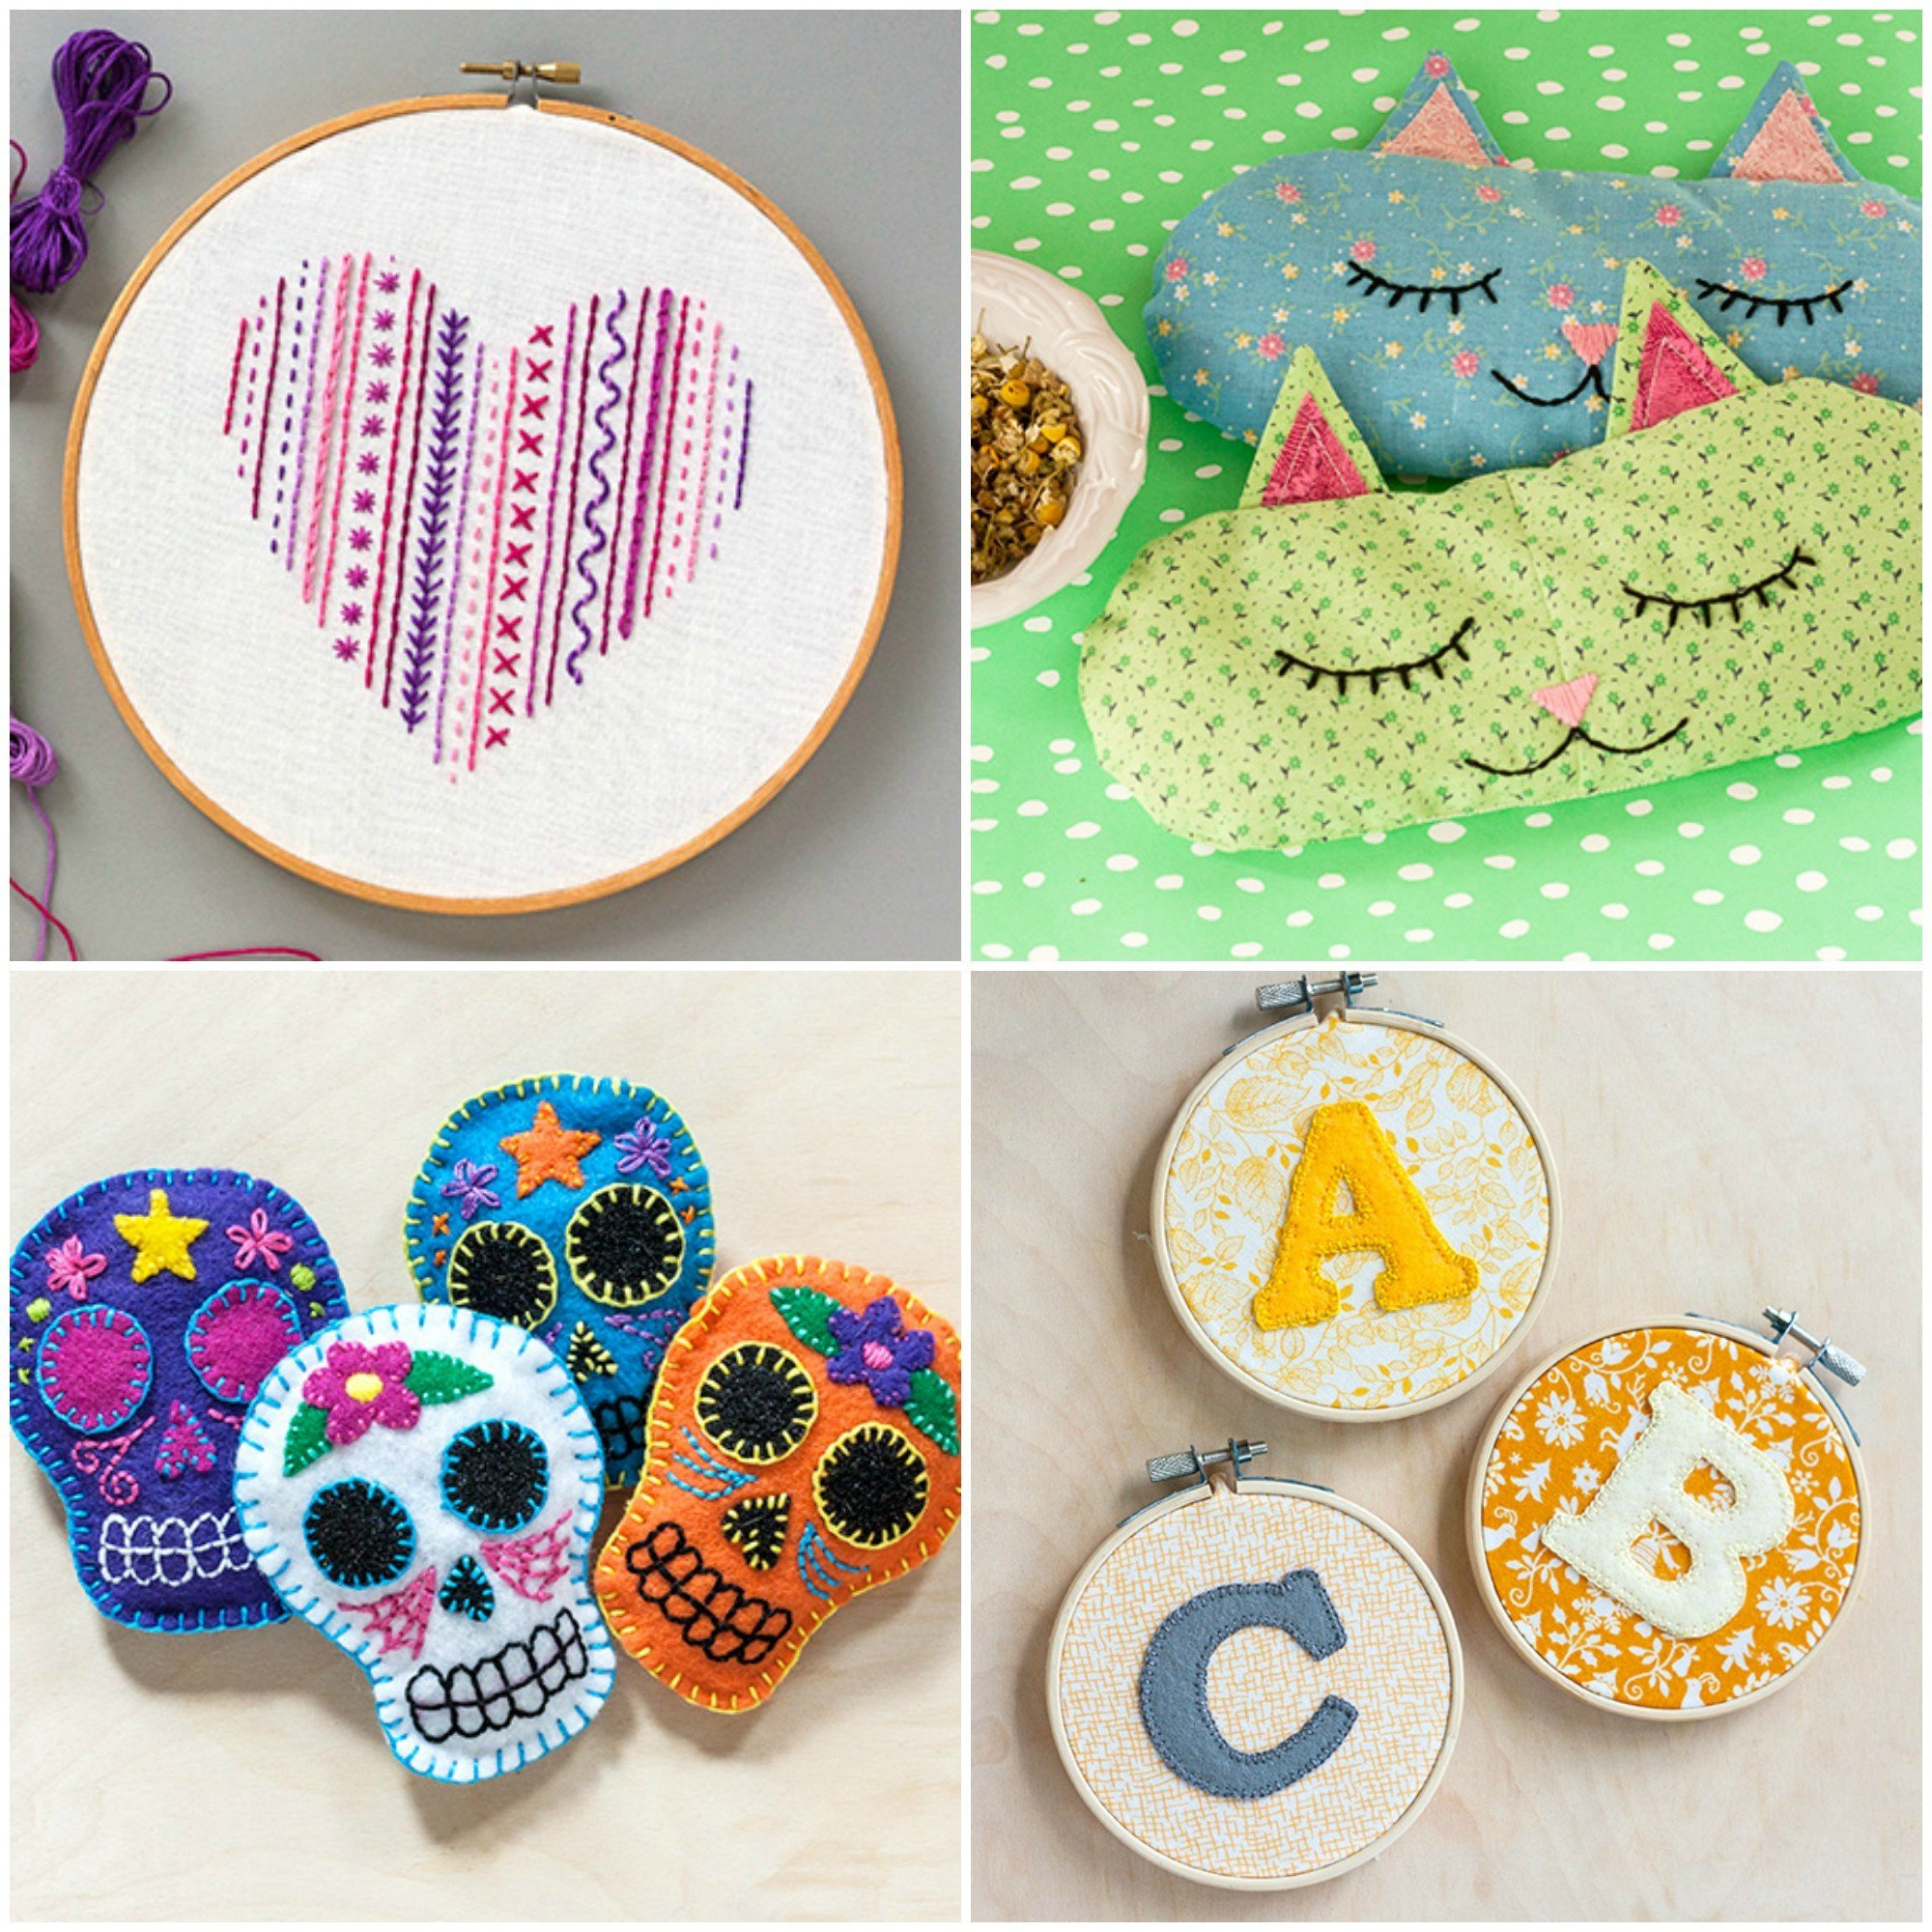 Cute tutorials with embroidery. Free craft project ideas